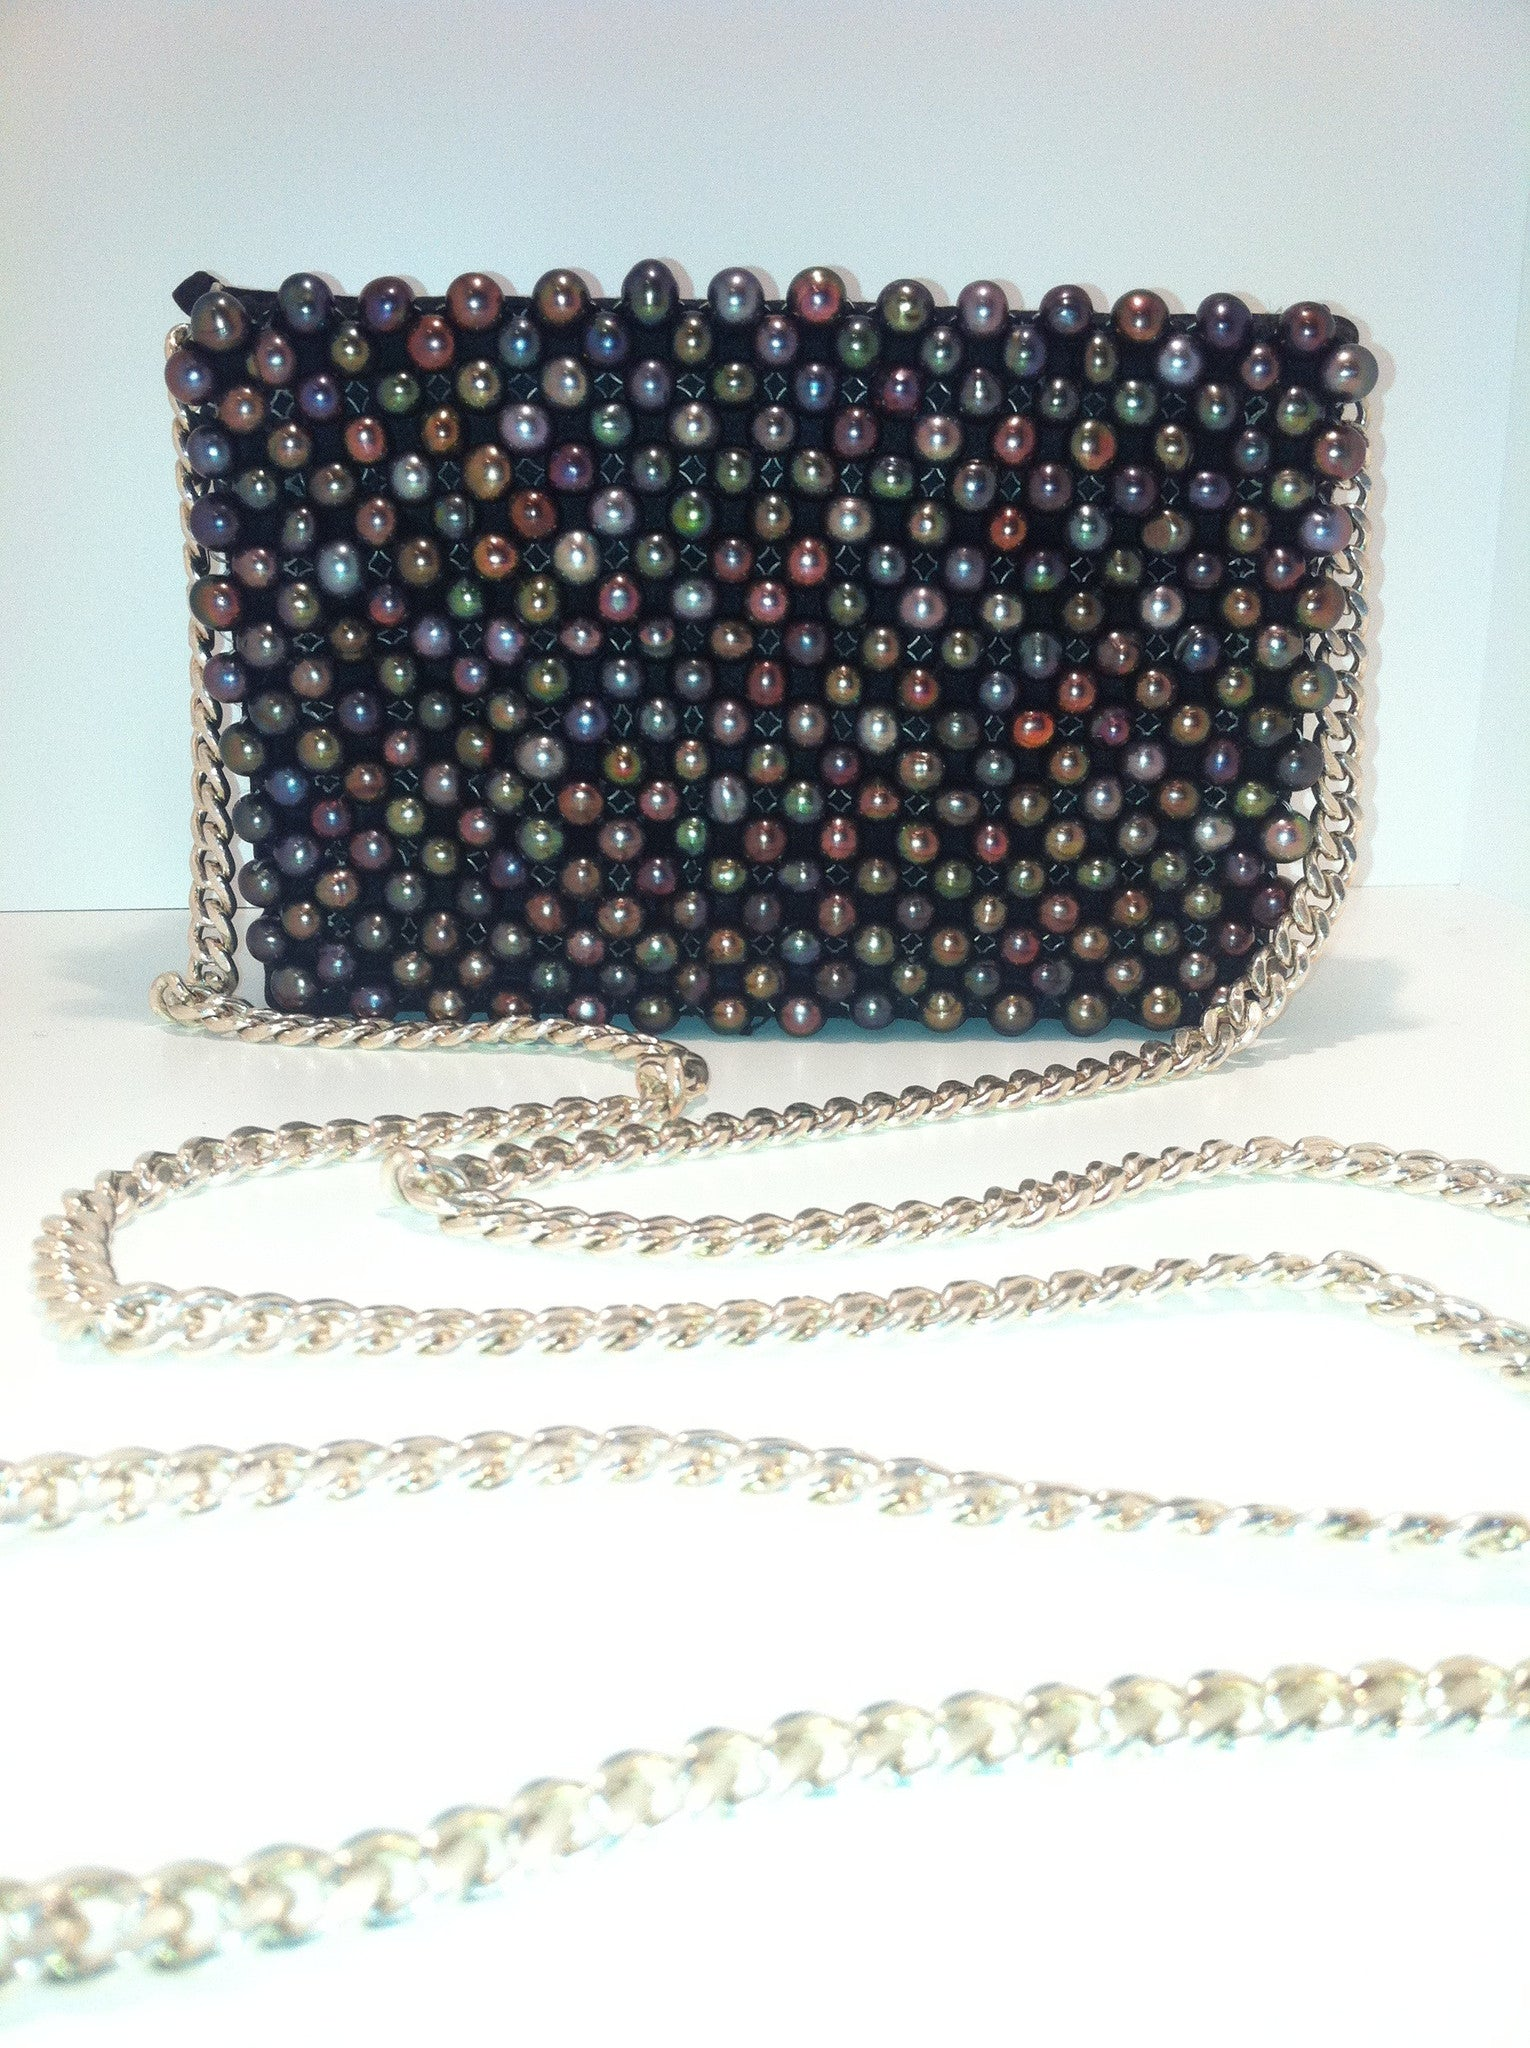 Janet Deleuse Label Cultured Pearl Bag a5be1151030dd